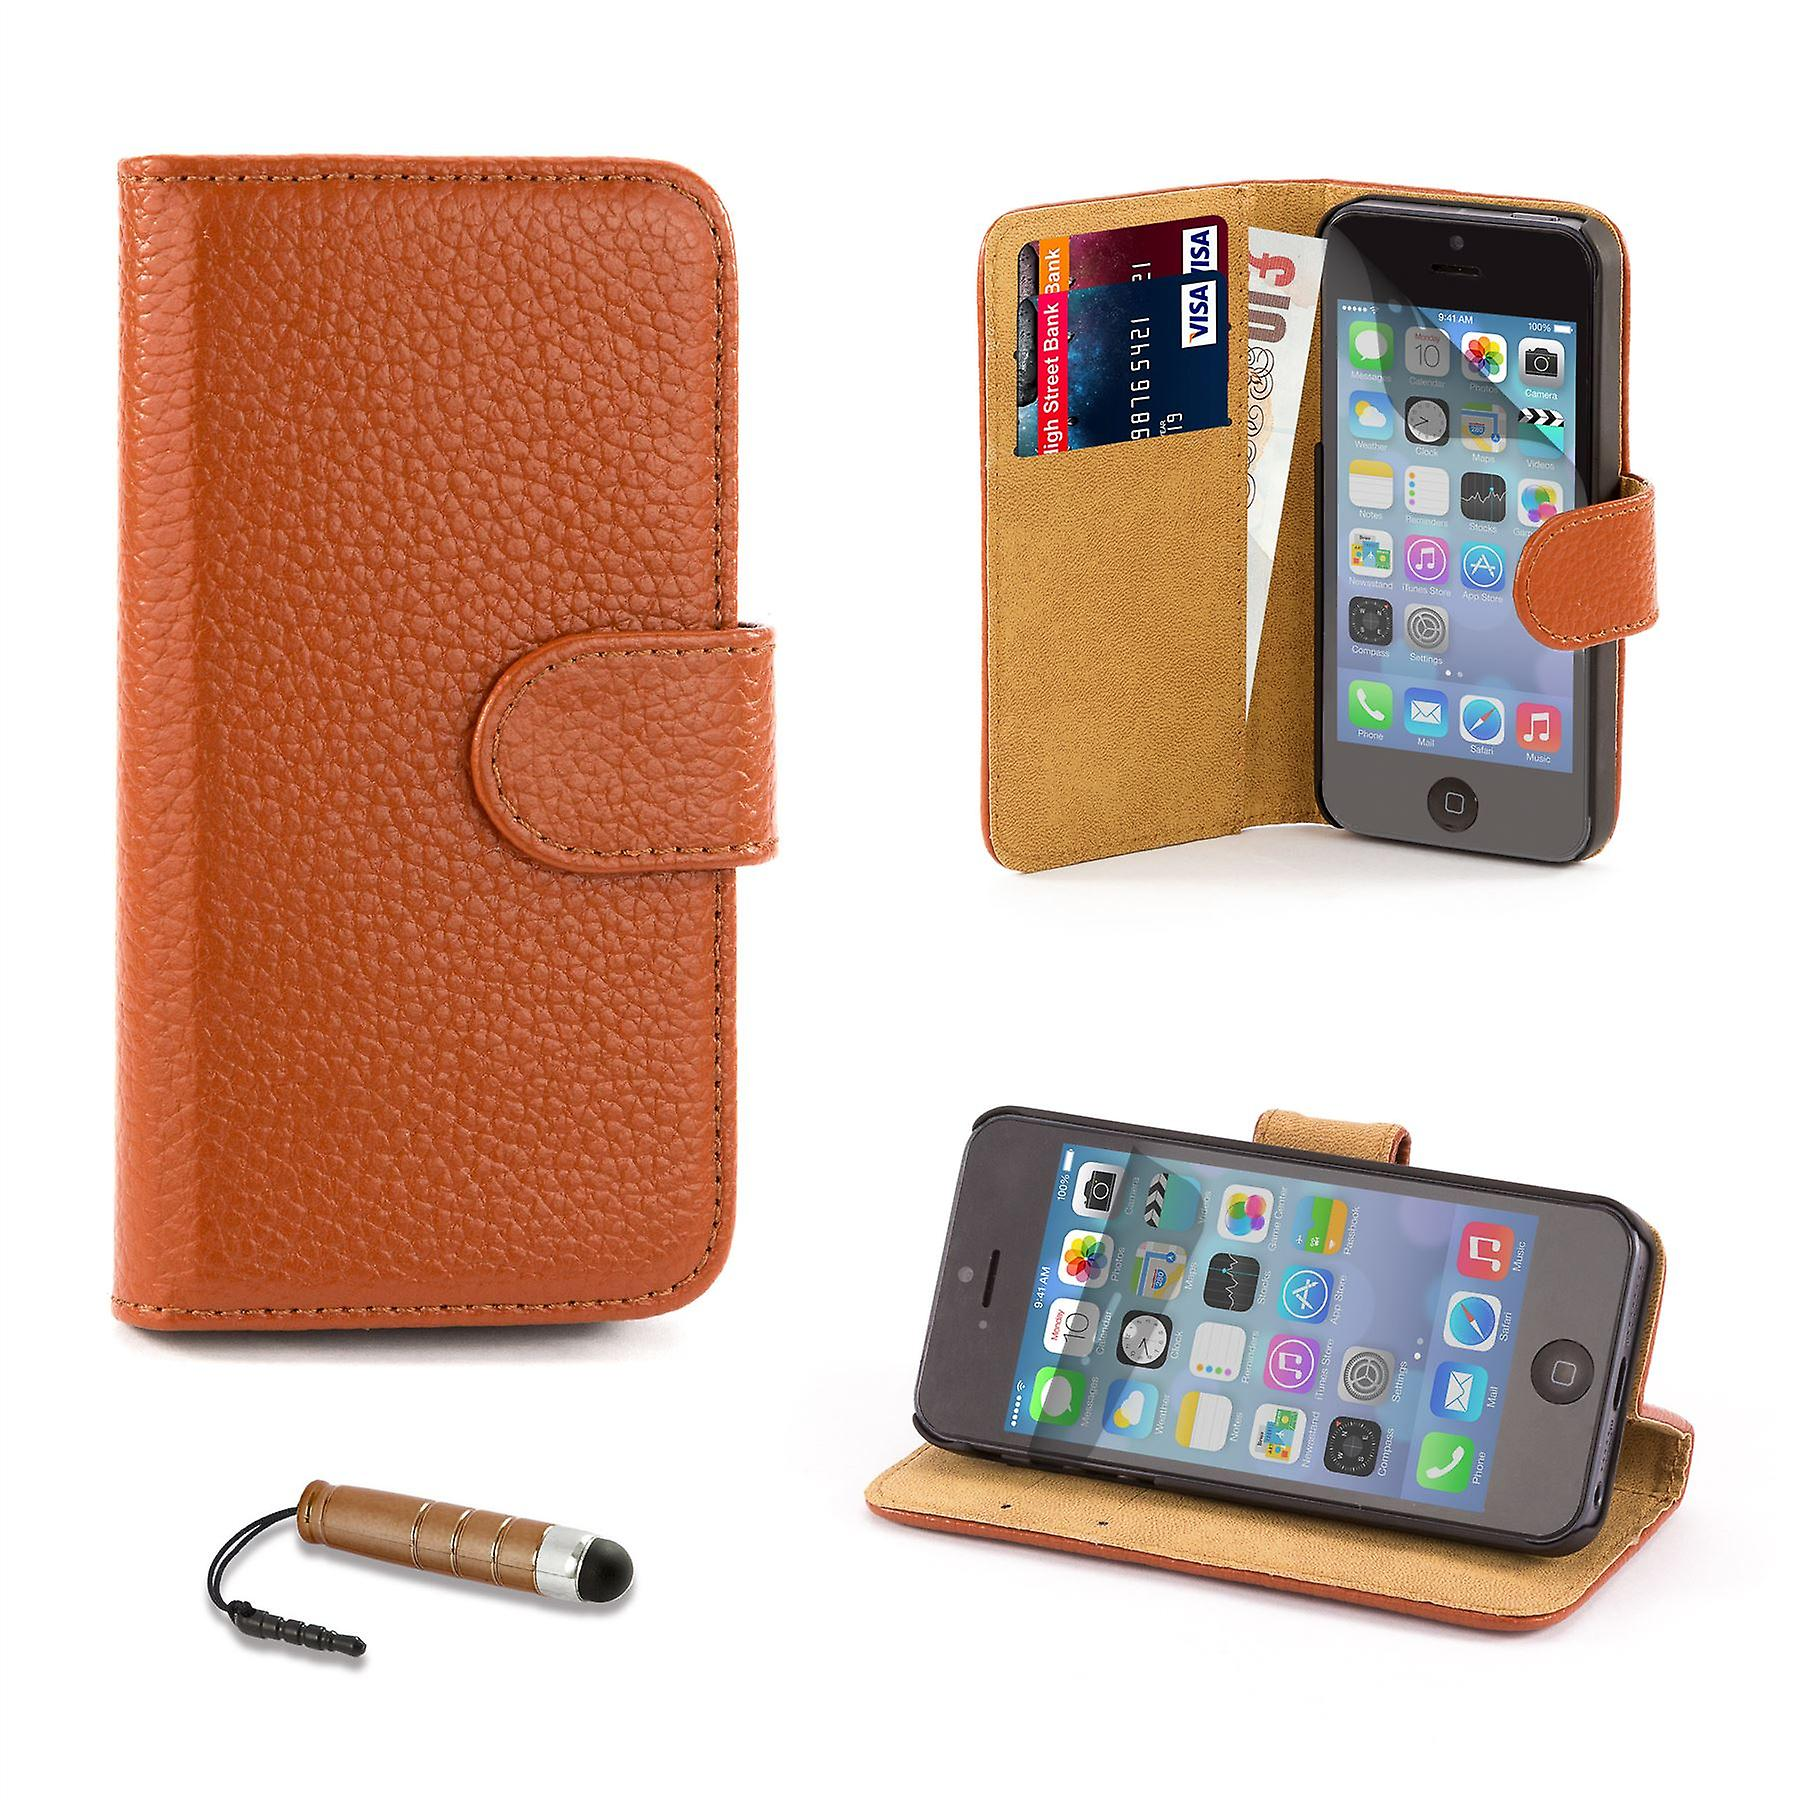 Premium Book Leather Case Cover for Apple iPhone 5 5S SE - Light Brown